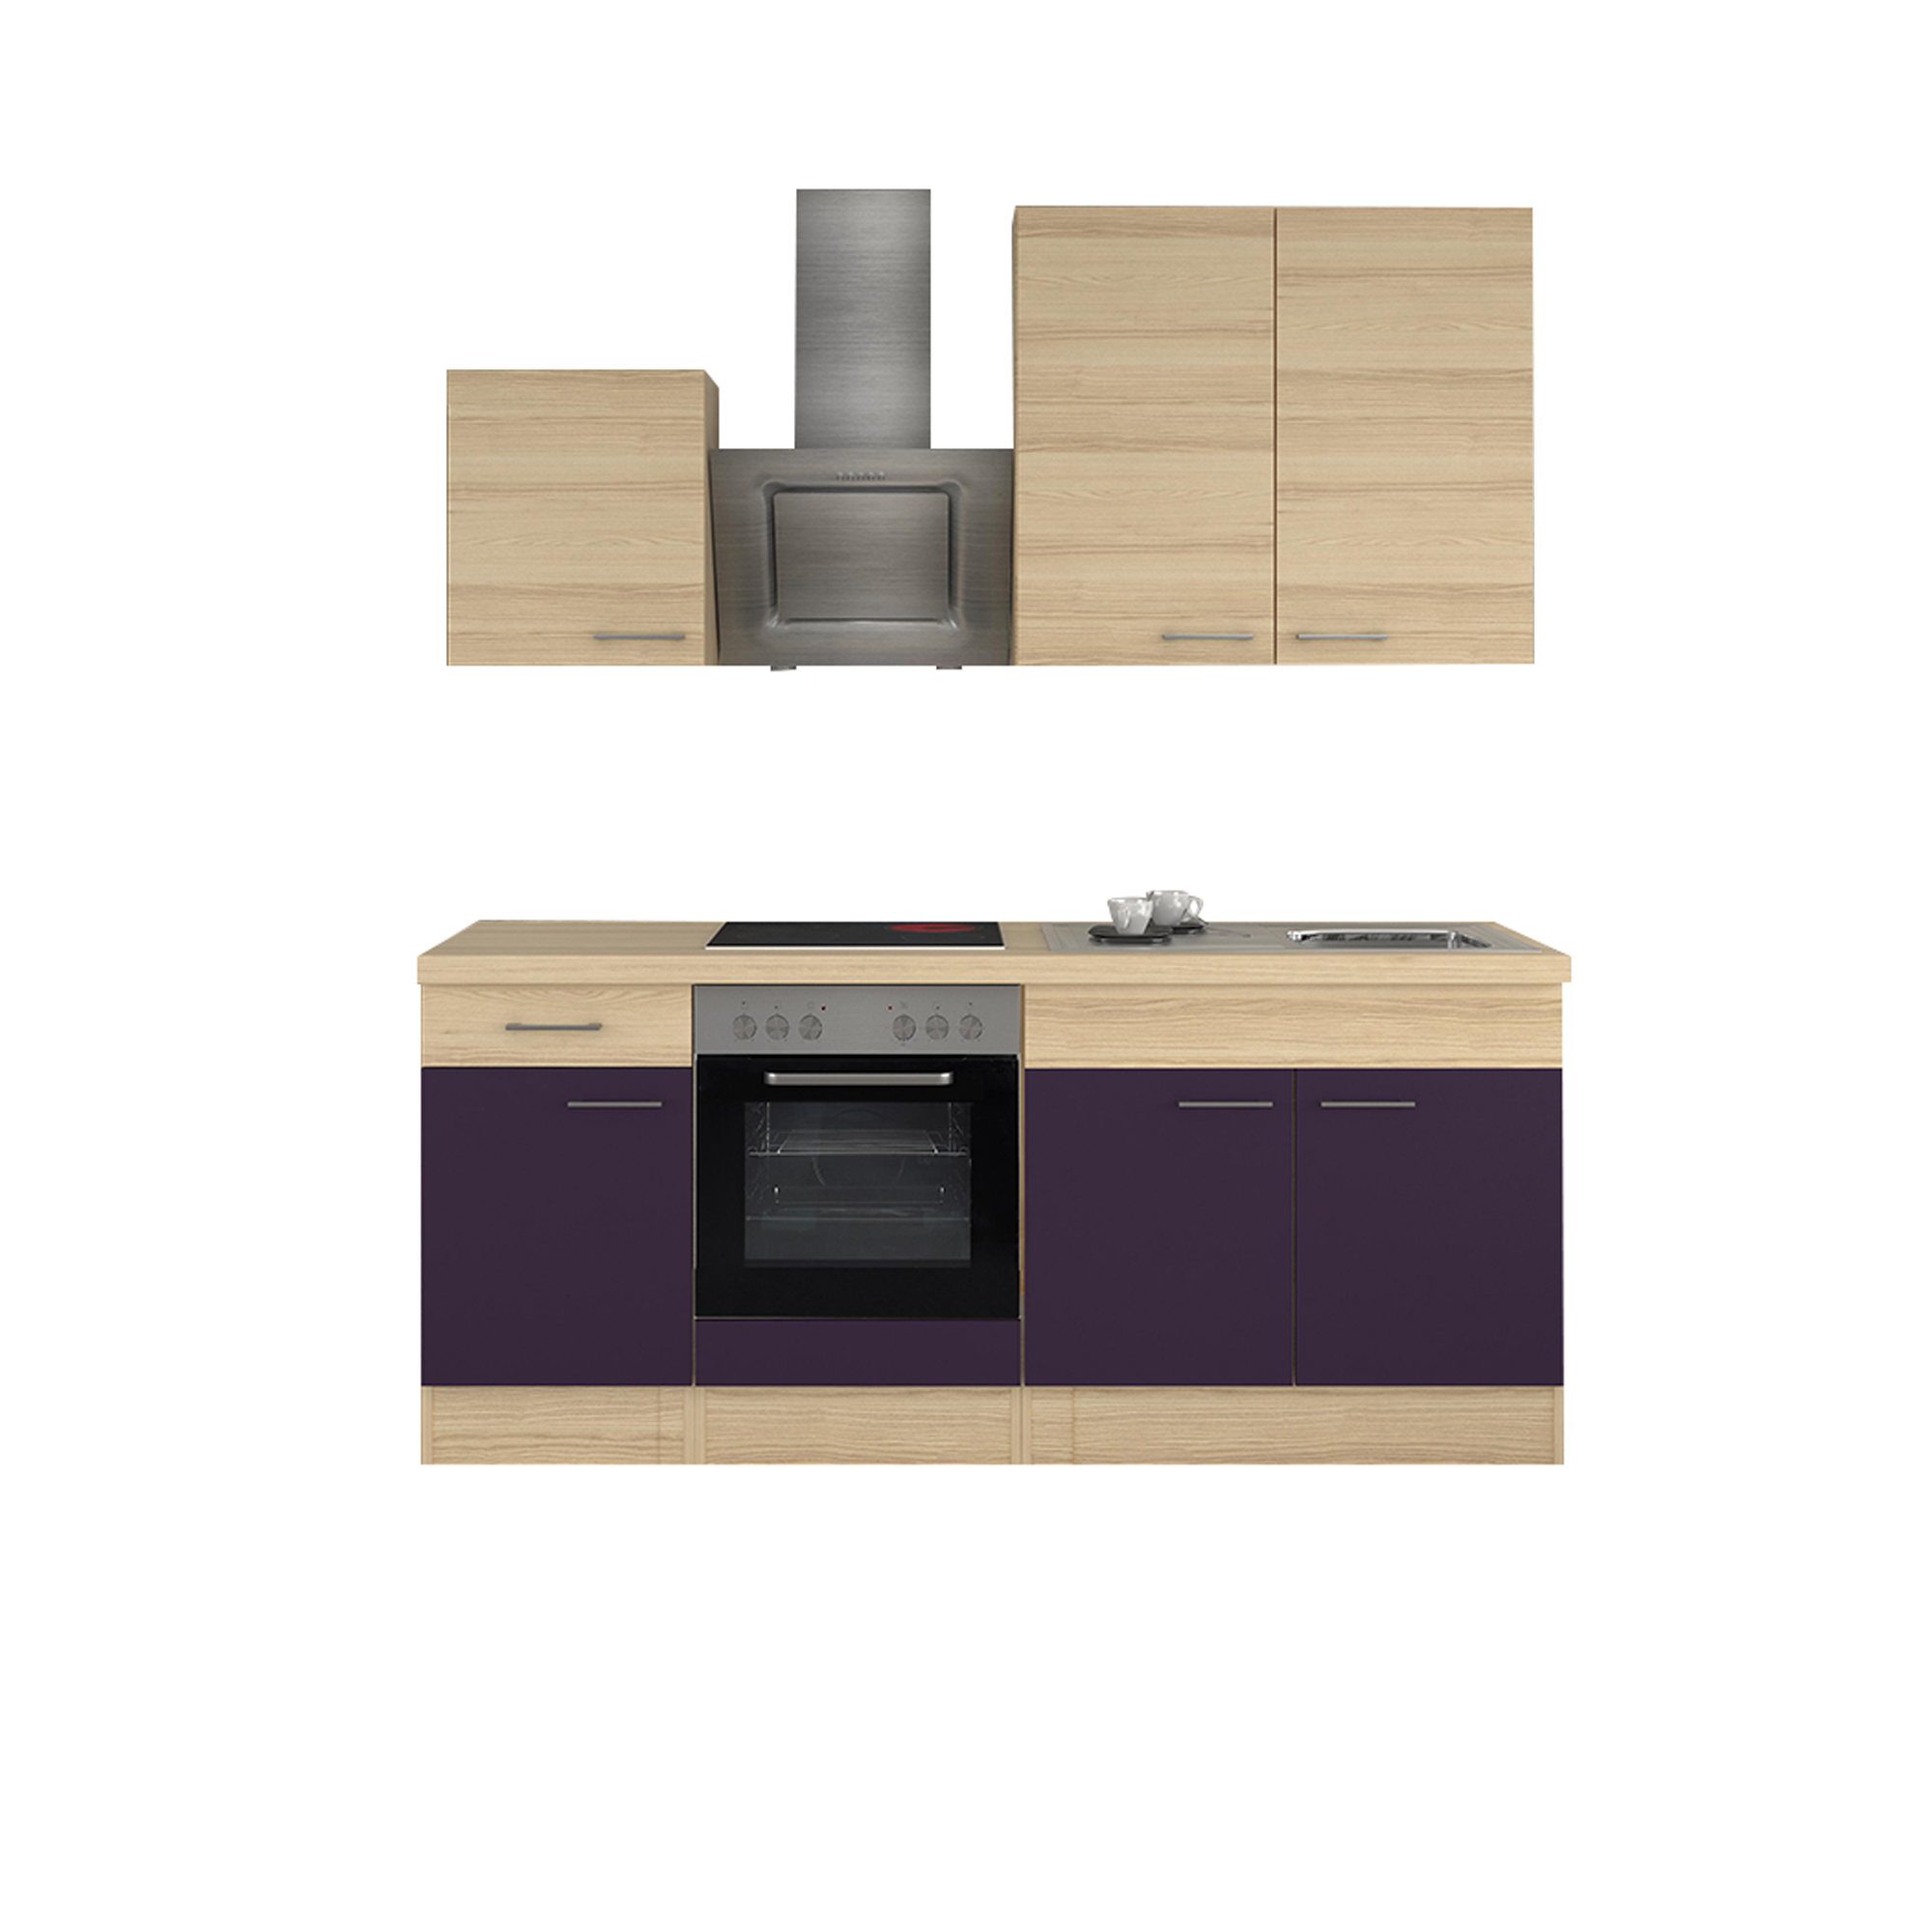 k chenzeile focus k che mit e ger ten 11 teilig breite 210 cm aubergine k che k chenzeilen. Black Bedroom Furniture Sets. Home Design Ideas